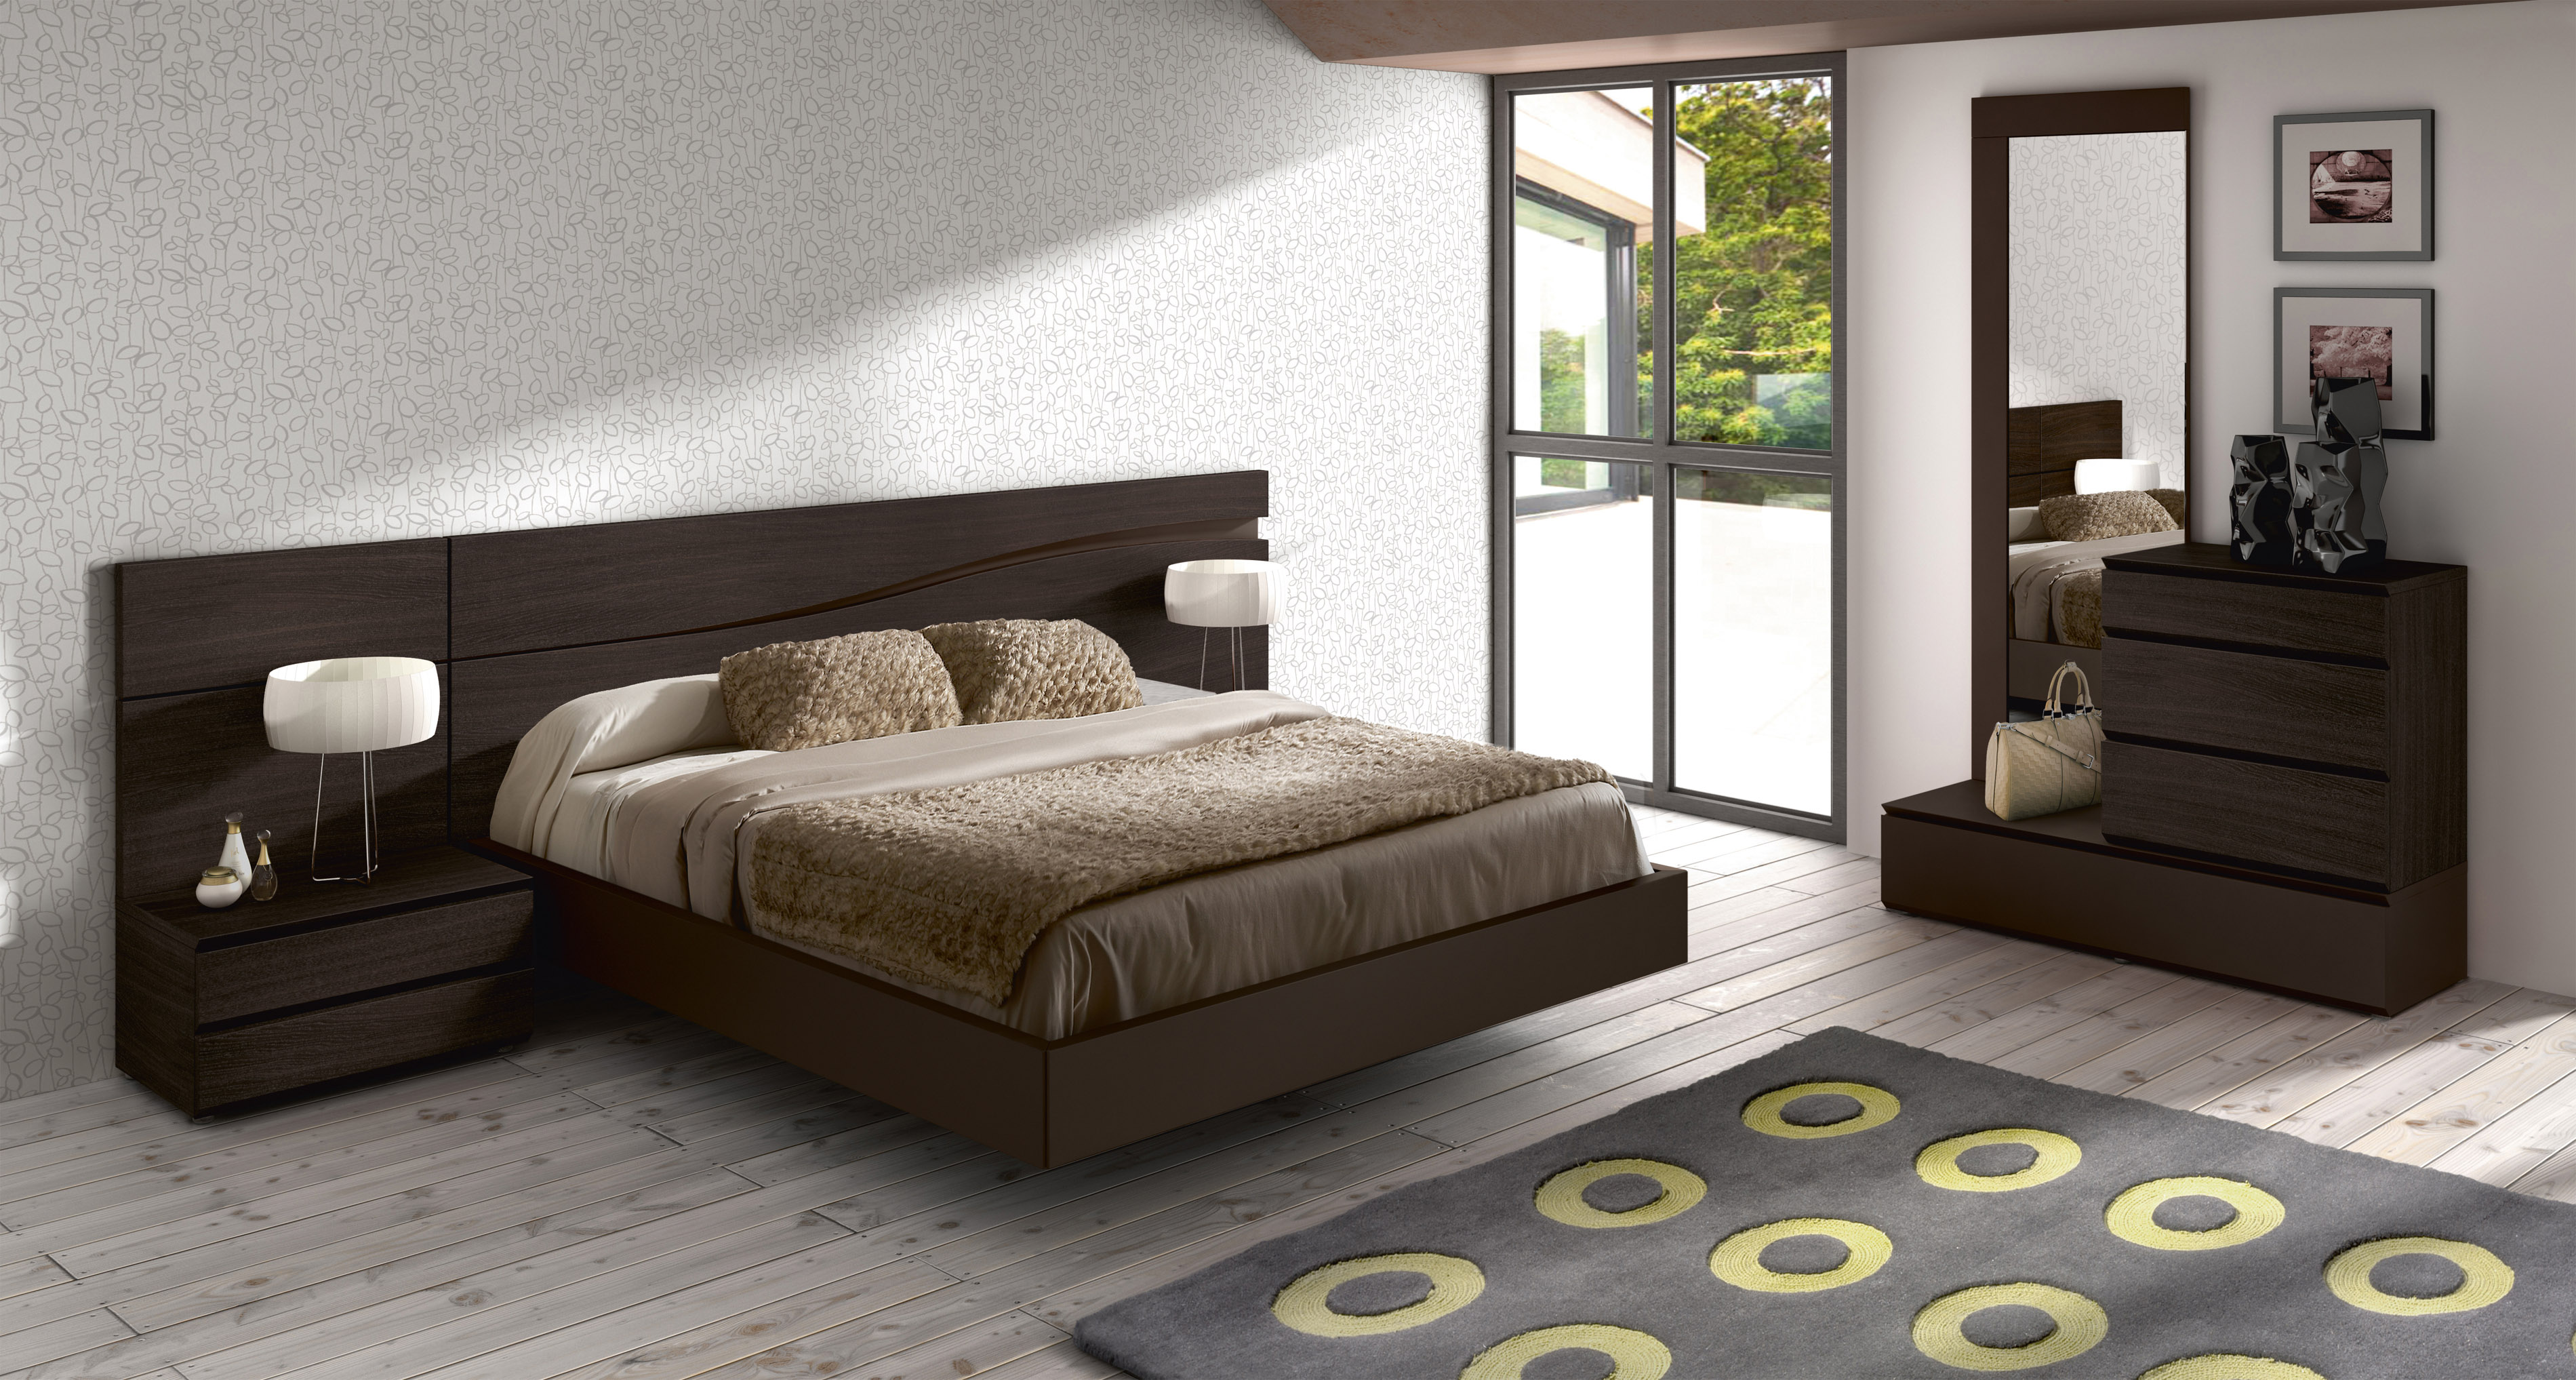 Lacquered made in spain wood high end platform bed with for Spring hill designs bedroom furniture